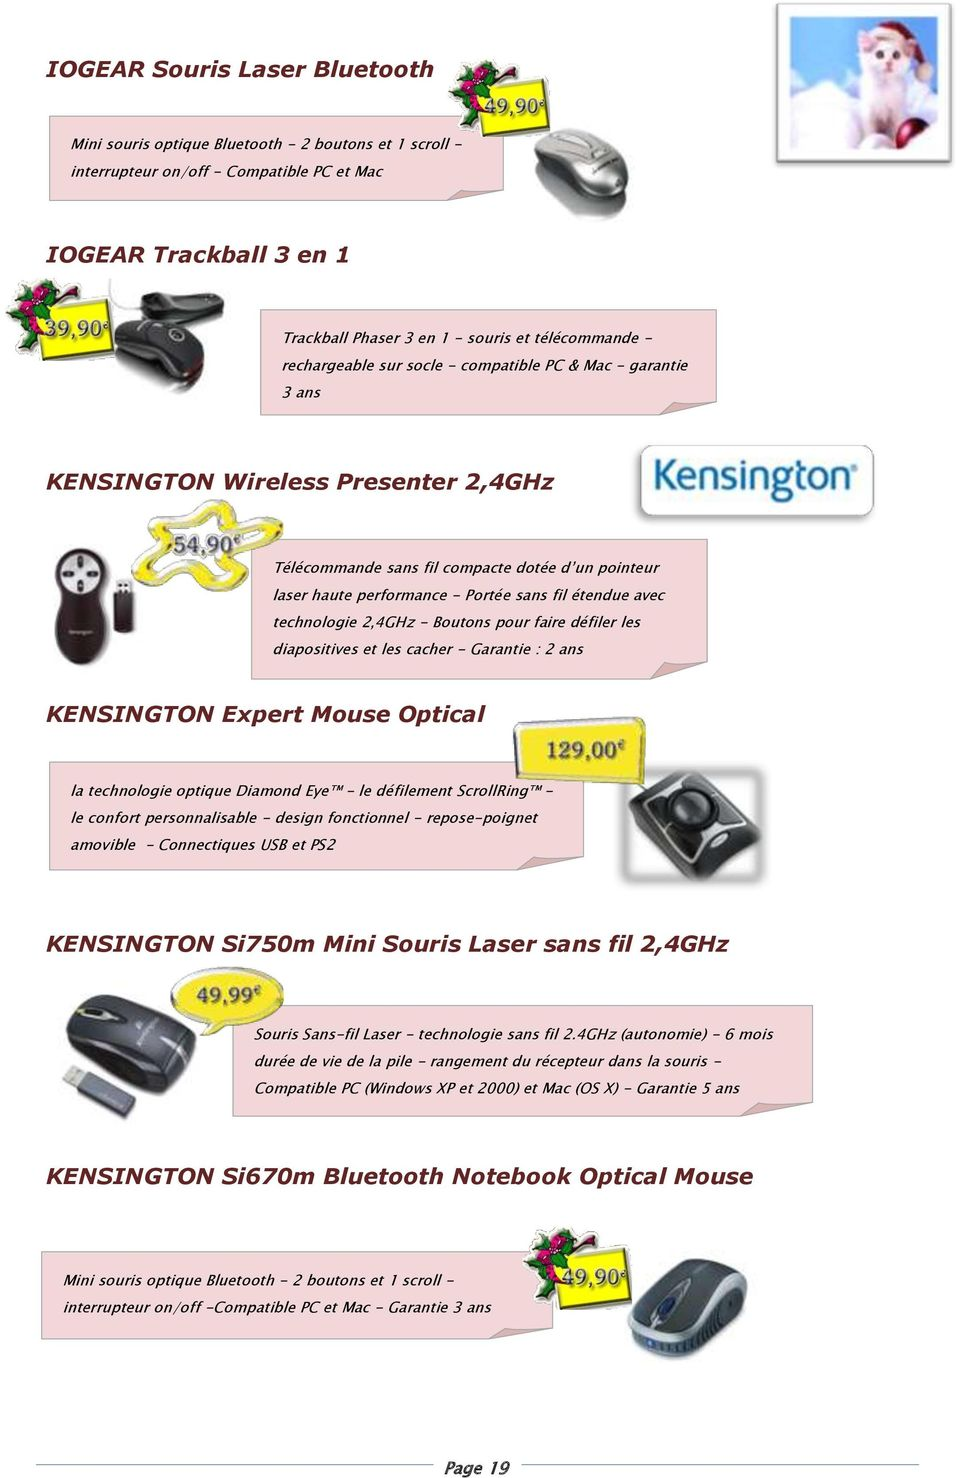 sans fil étendue avec technologie 2,4GHz - Boutons pour faire défiler les diapositives et les cacher - Garantie : 2 ans KENSINGTON Expert Mouse Optical la technologie optique Diamond Eye - le